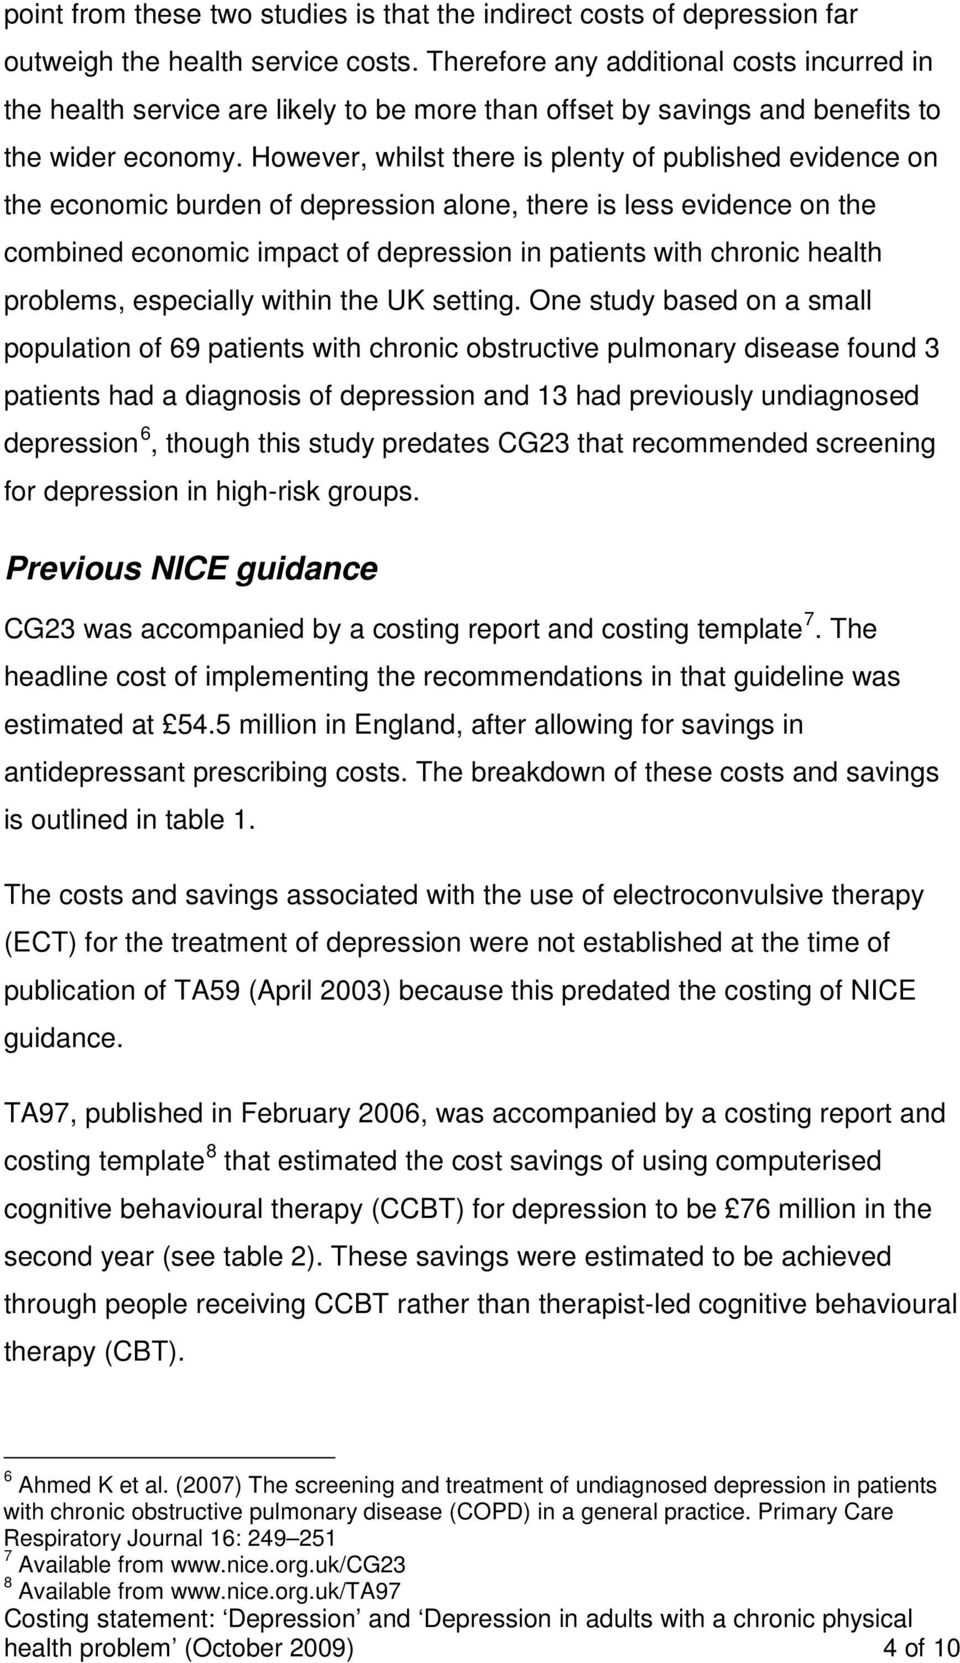 However, whilst there is plenty of published evidence on the economic burden of depression alone, there is less evidence on the combined economic impact of depression in patients with chronic health